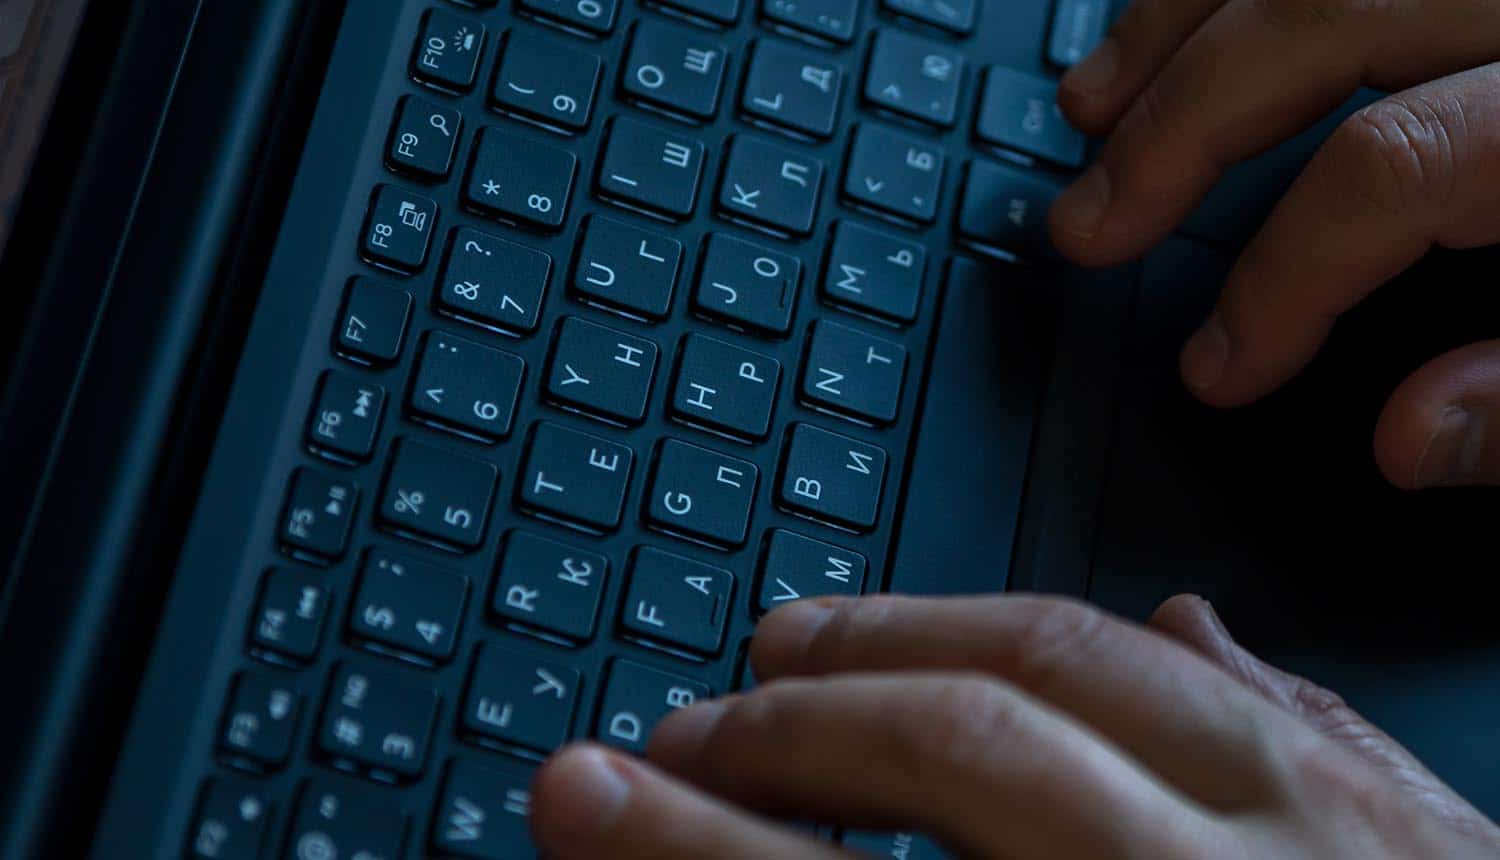 Hands on a laptop keyboard showing REvil ransomware offer on hacker forum